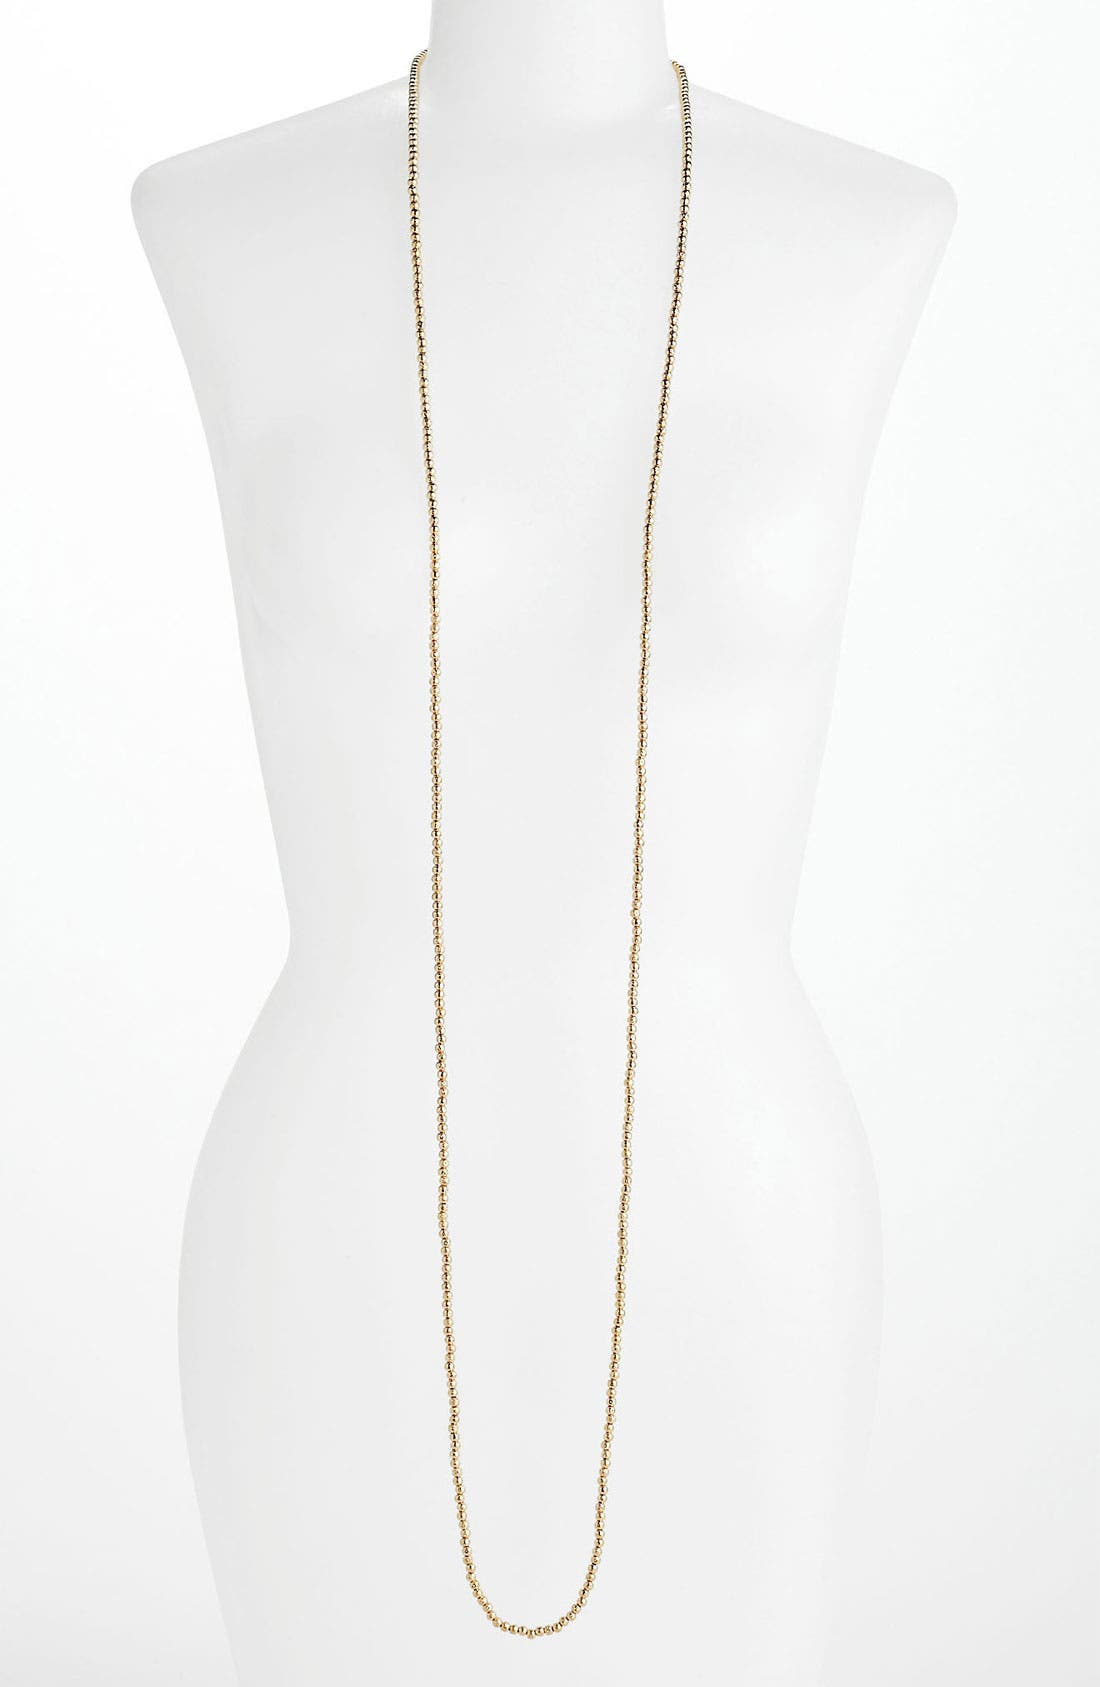 Alternate Image 1 Selected - Nordstrom 'Sand Dollar' Extra Long Bead Necklace